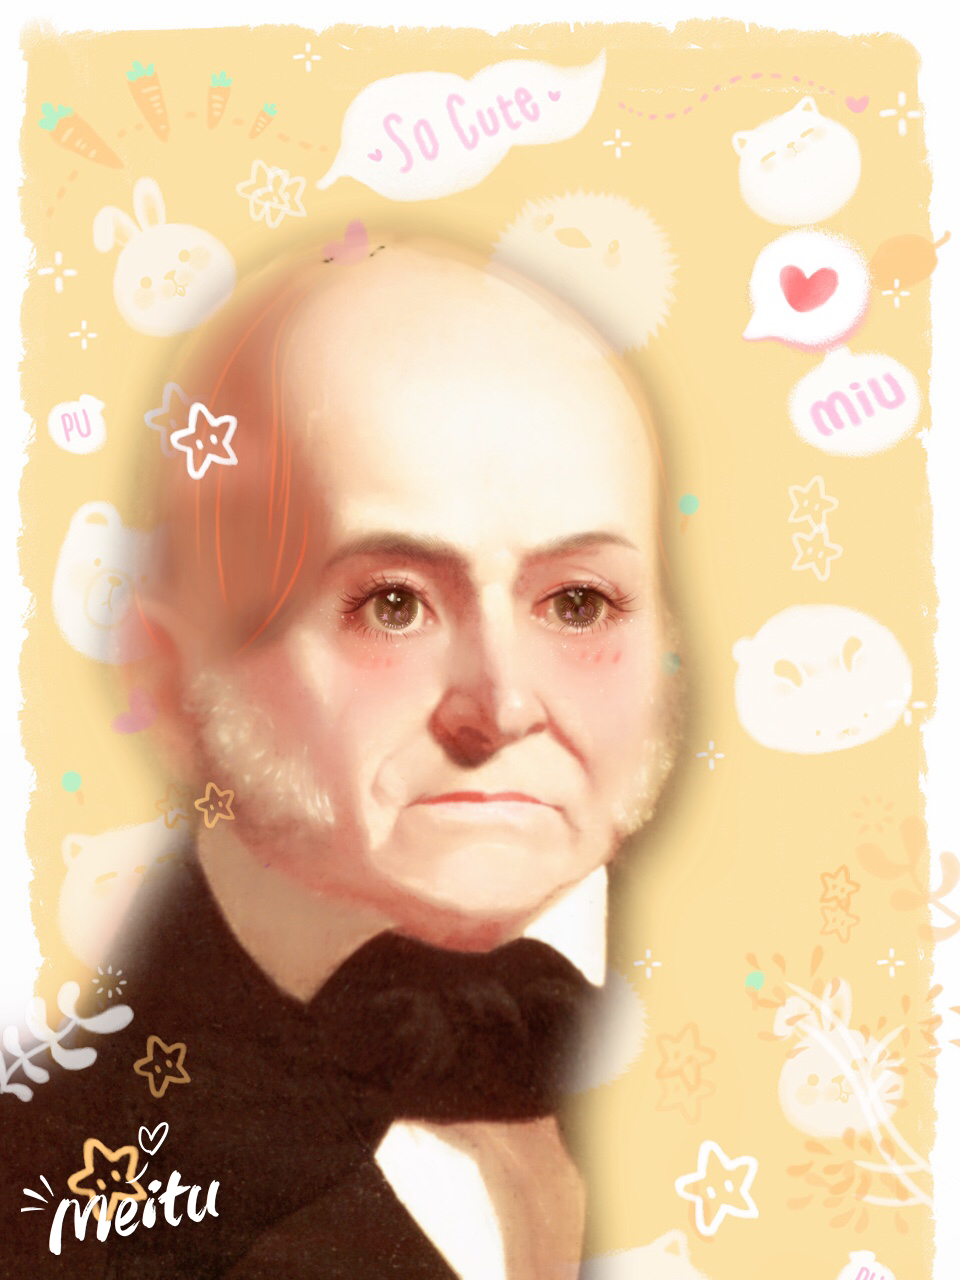 John Quincy Adams, 6th President